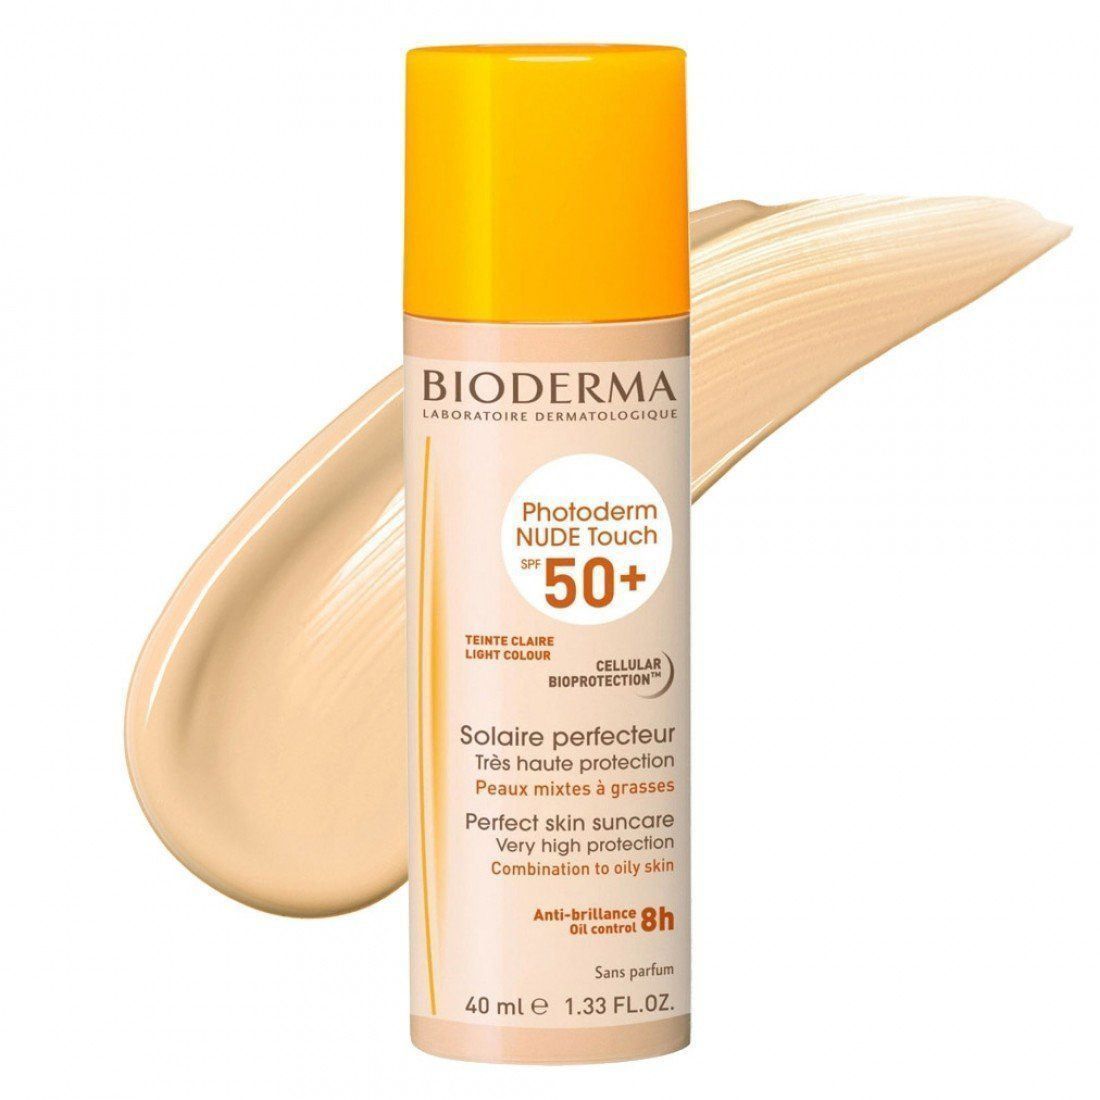 kem chống nắng bioderma photoderm max nude touch 1